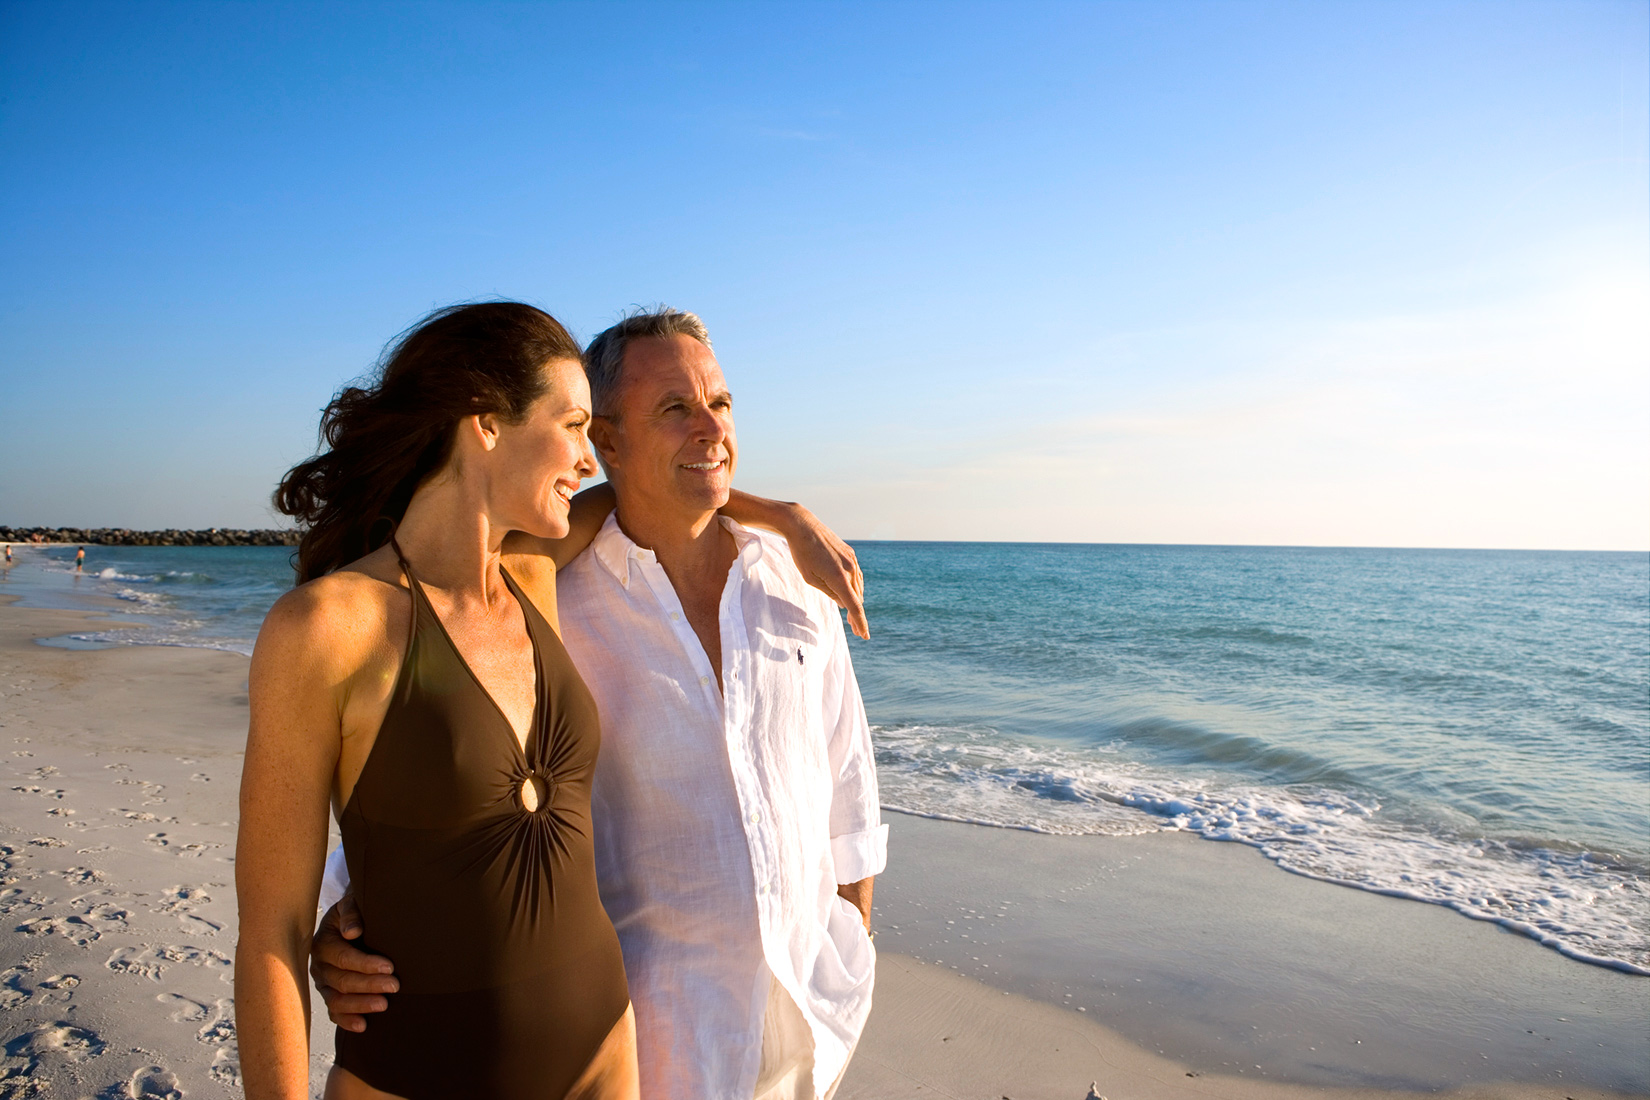 Robert-Holland_lifestyle-photographer_couple-on-beach_Florida_panhandle